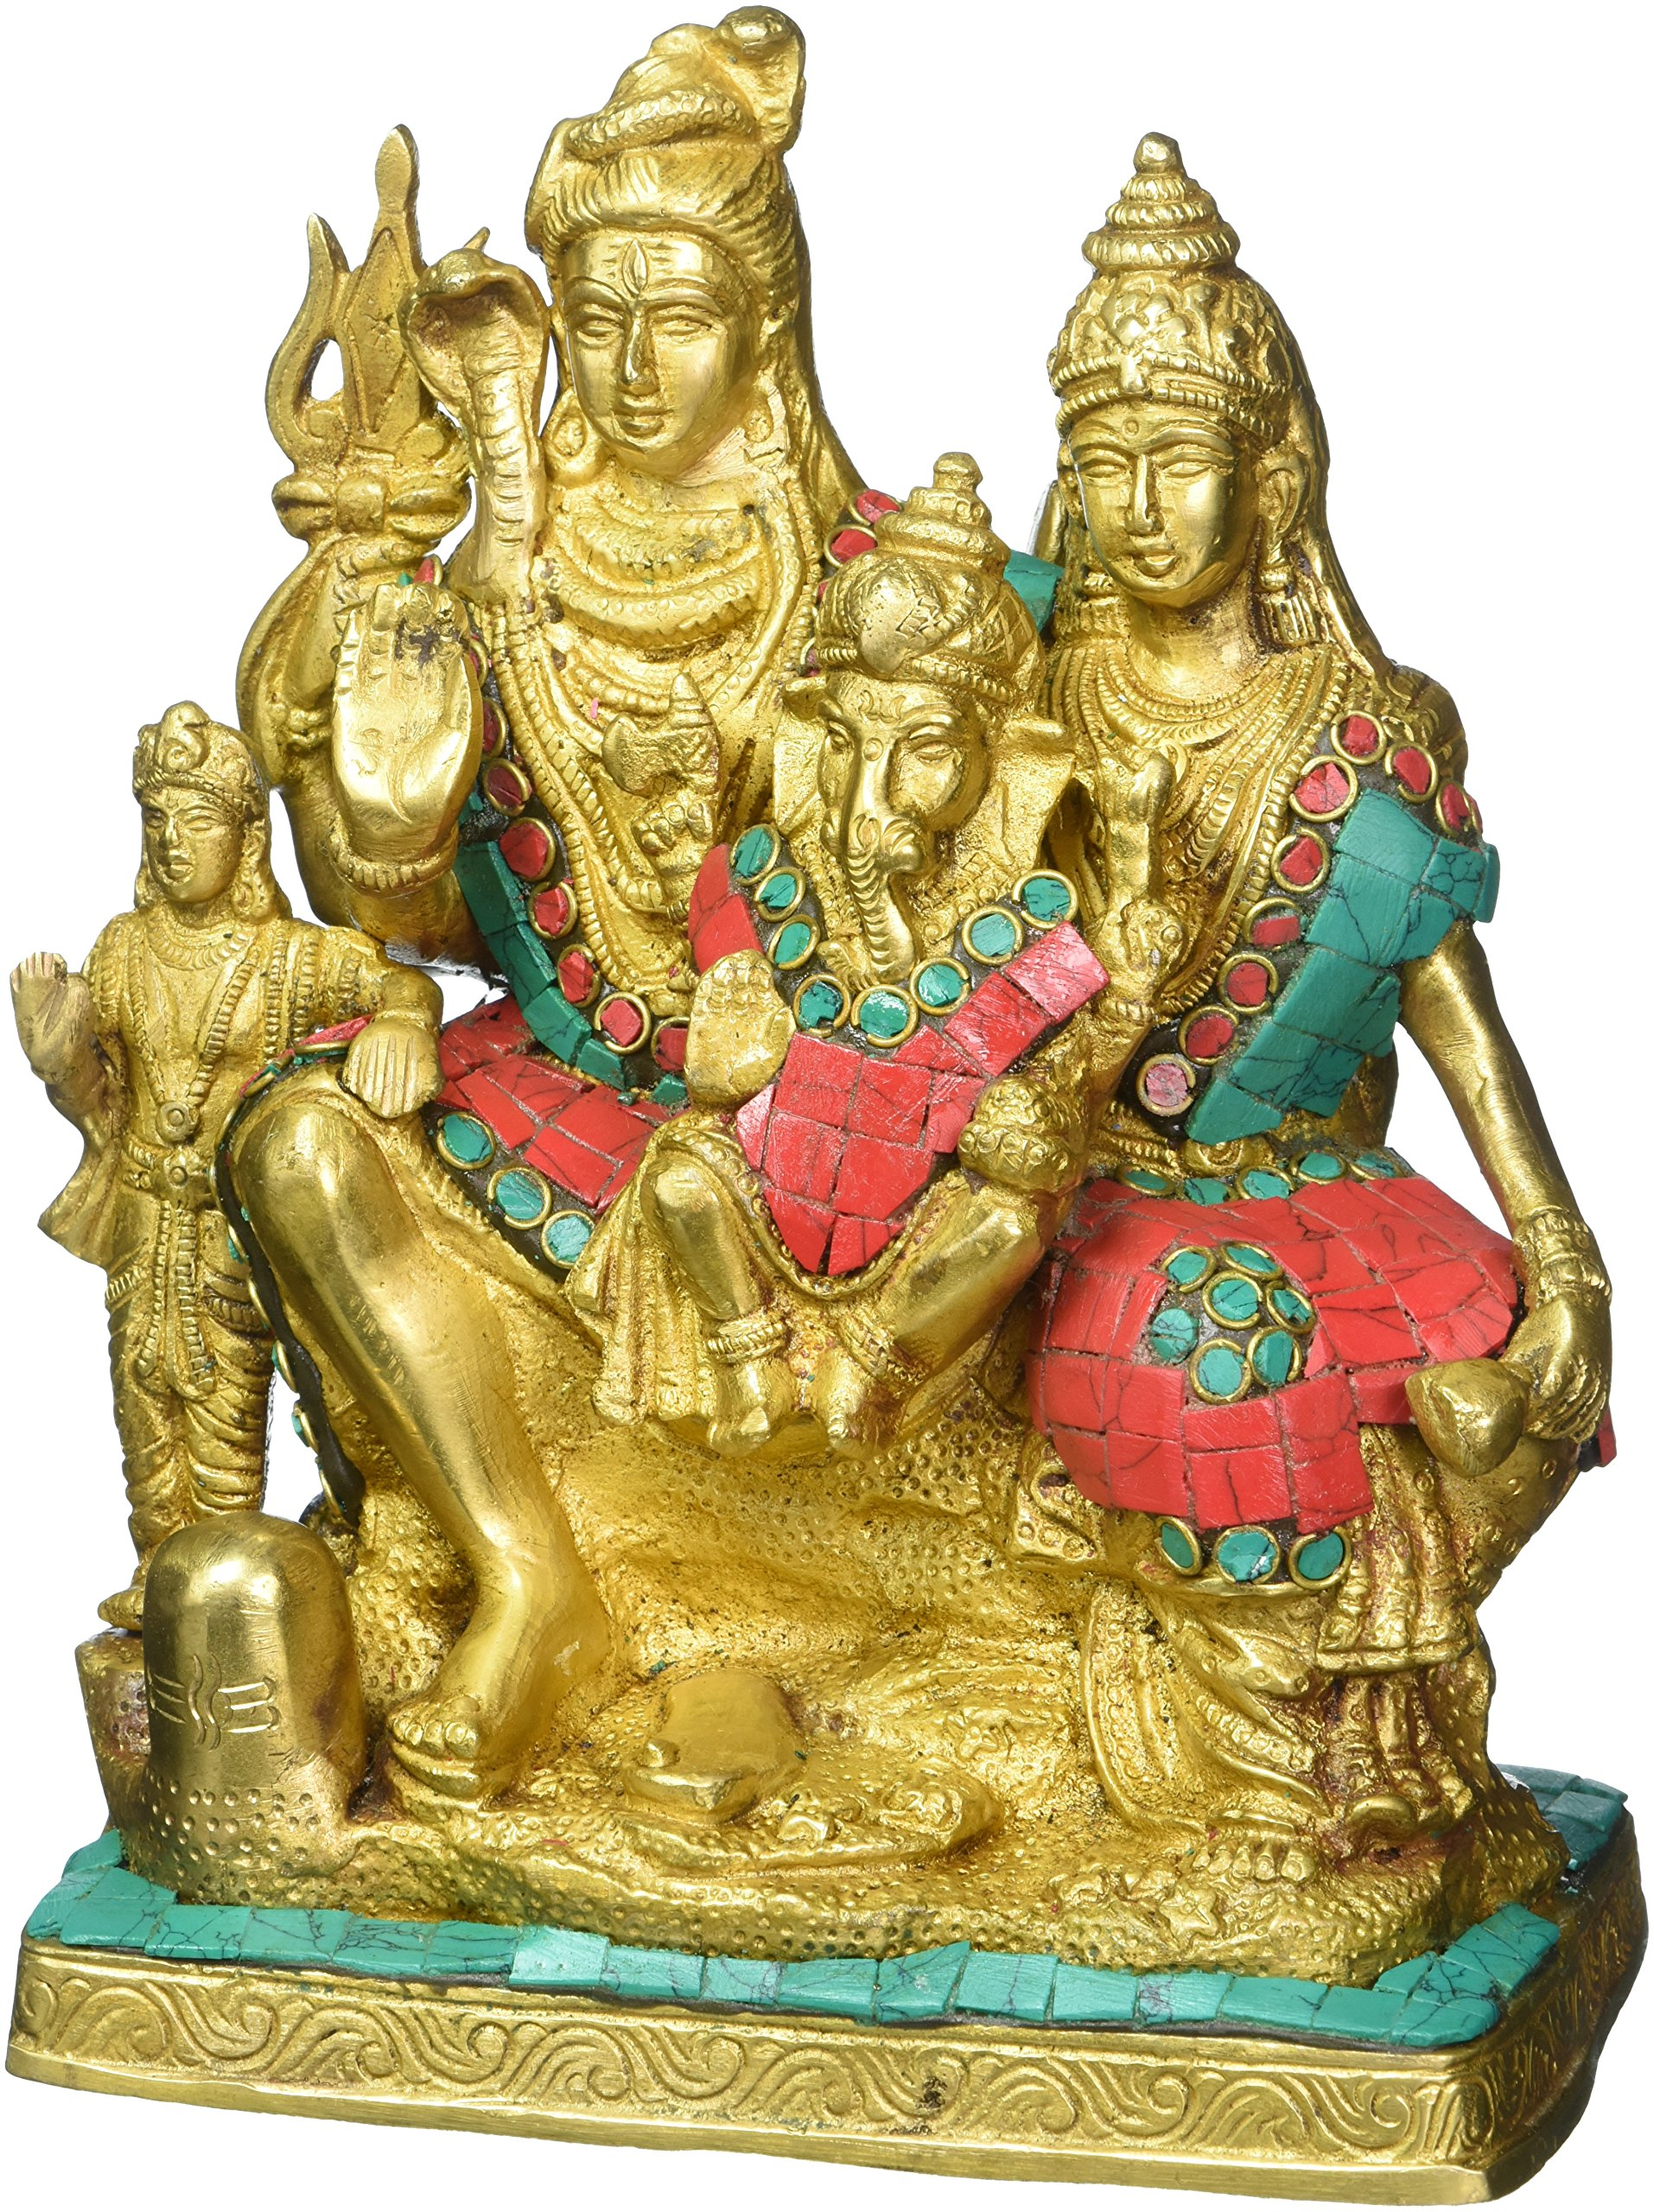 Aone India Hindu God Shiva Family Statue Shiva Parvati Ganesh Sculpture Brass Lord God Deity Figurine + Cash Envelope (Pack Of 10)